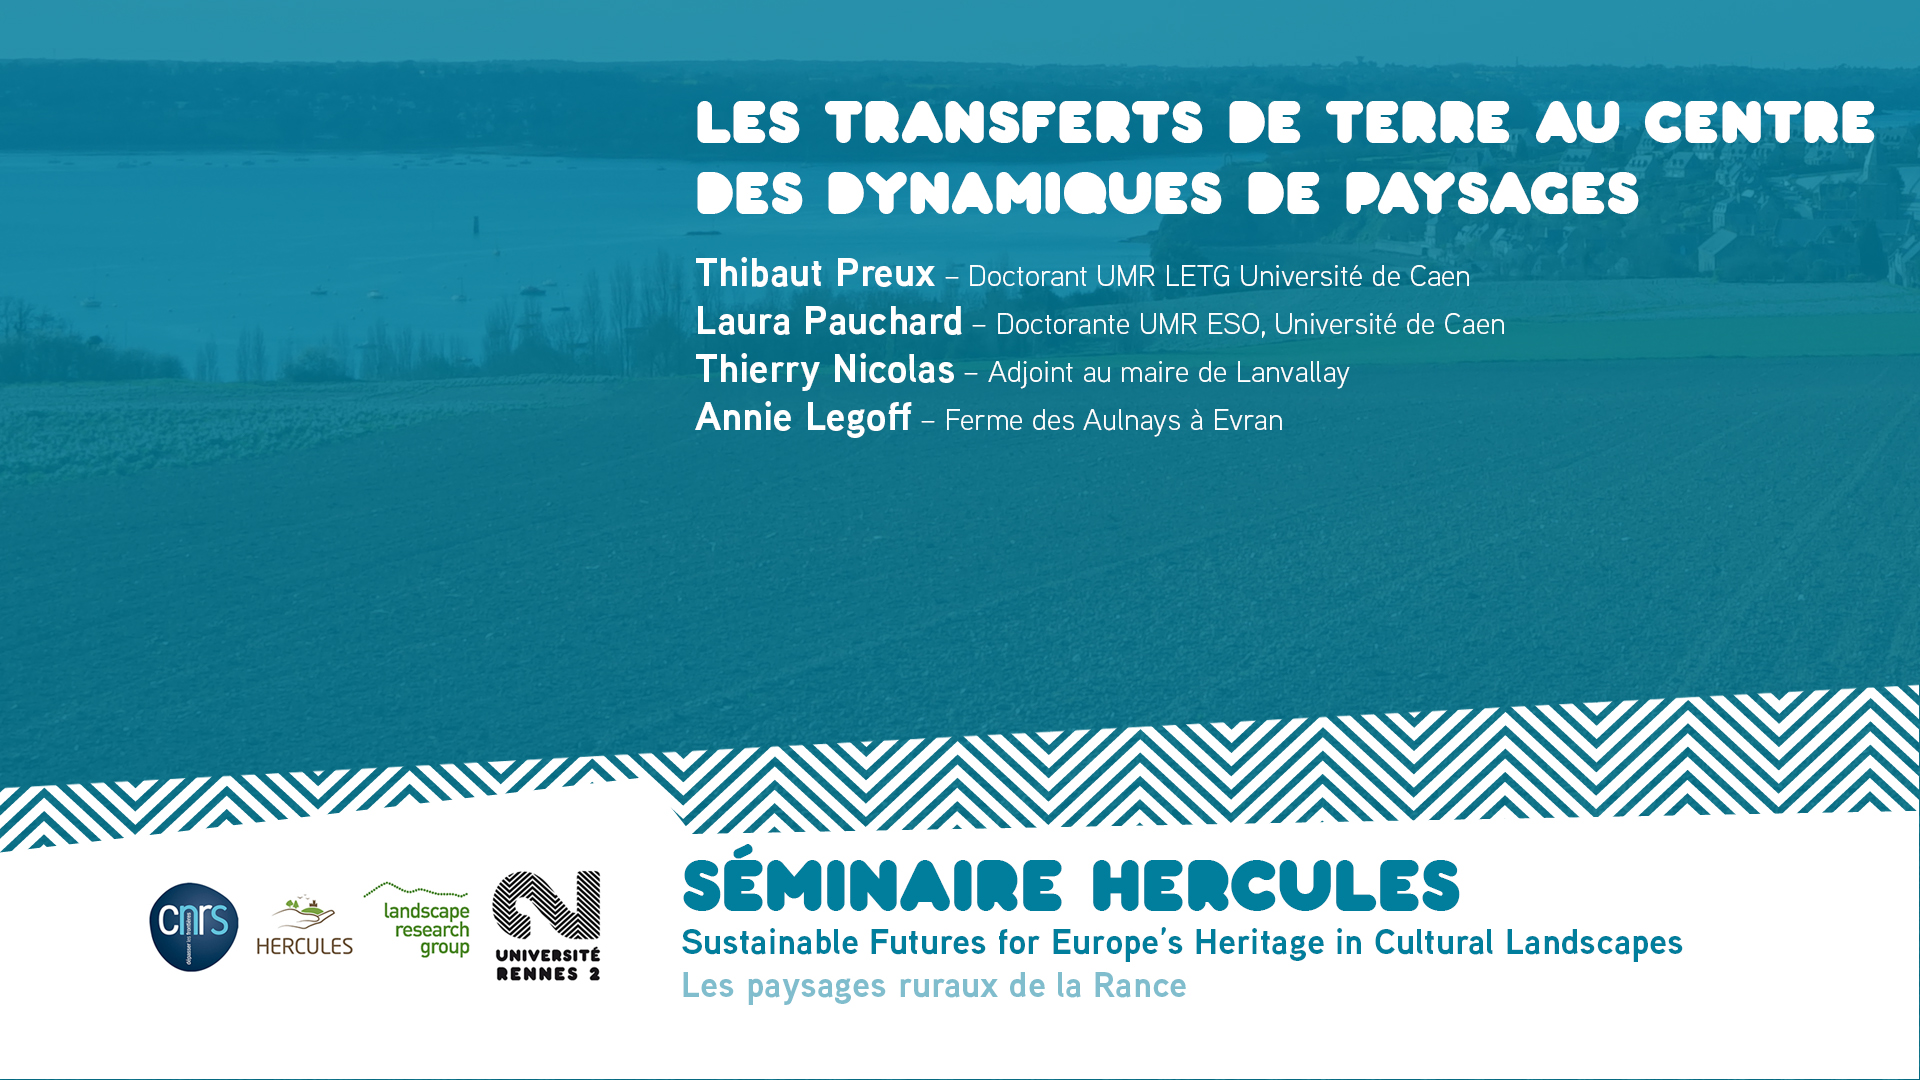 Les transferts de terre au centre des dynamiques de paysages - Sustainable Futures for Europe's Heritage in Cultural Landscapes |